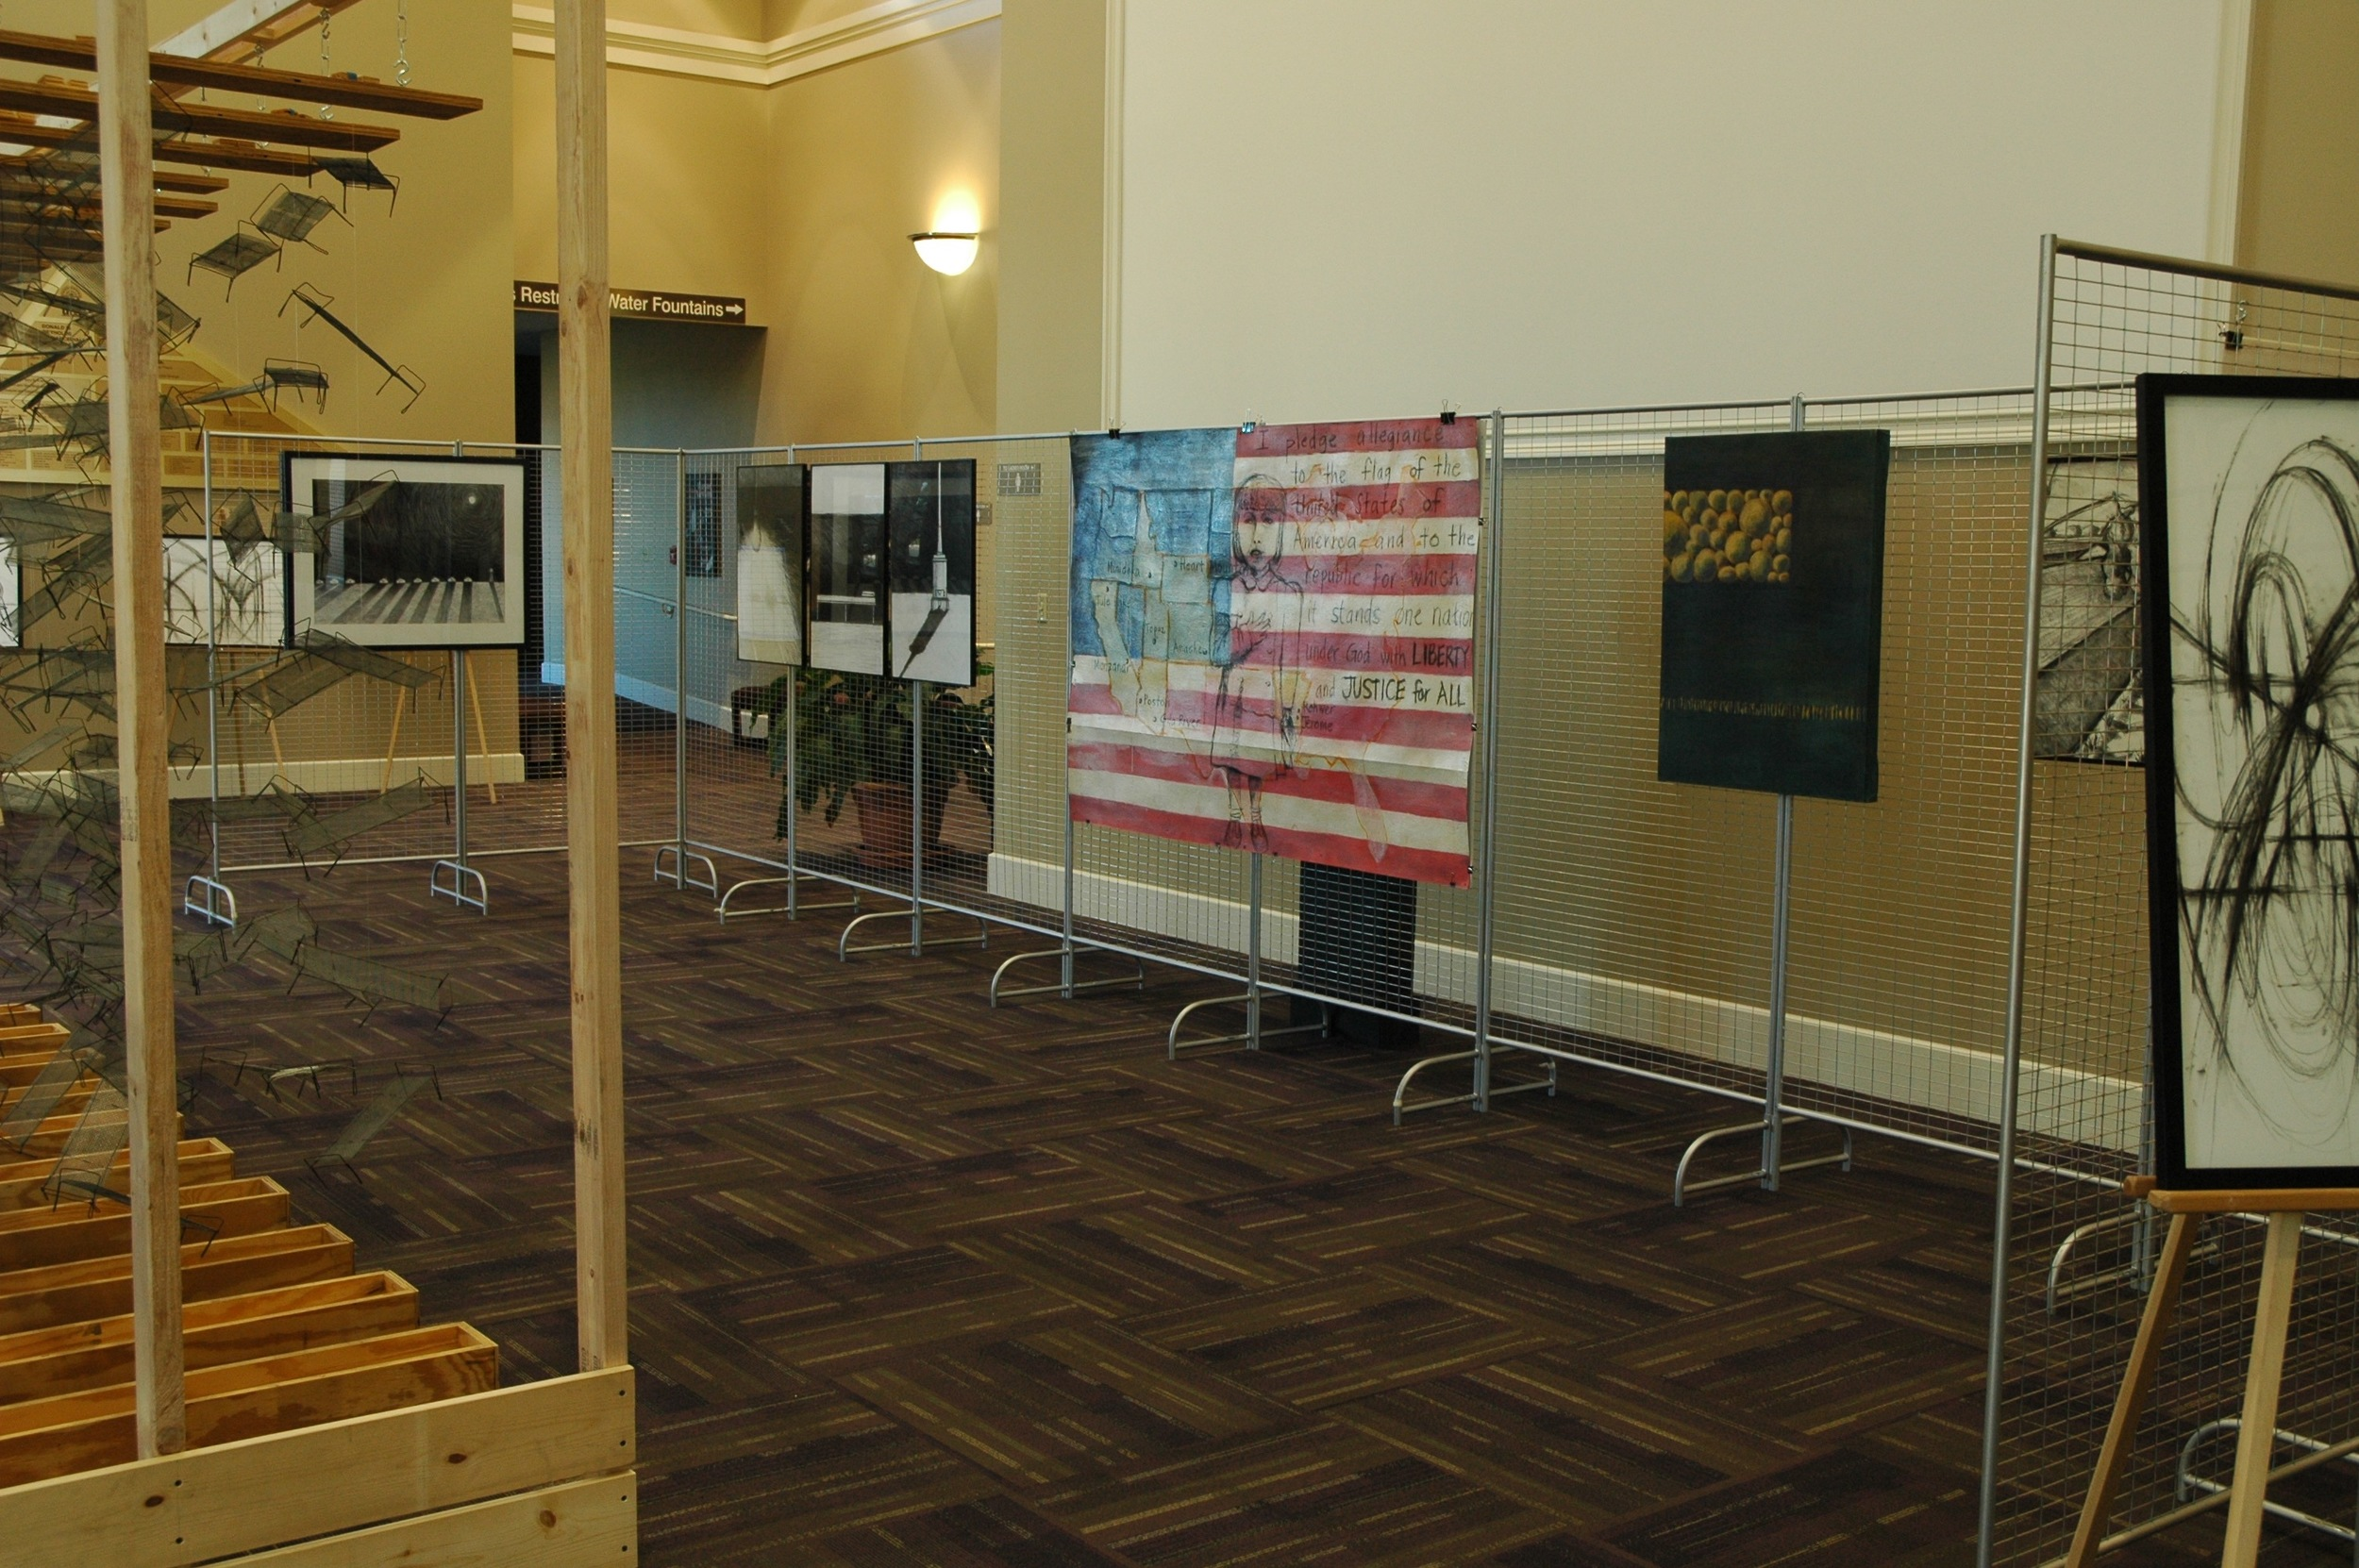 Exhibit at Reynolds Performance Hall, University of Central Arkansas for opening of Gaman. Photo by Nancy Chikaraishi